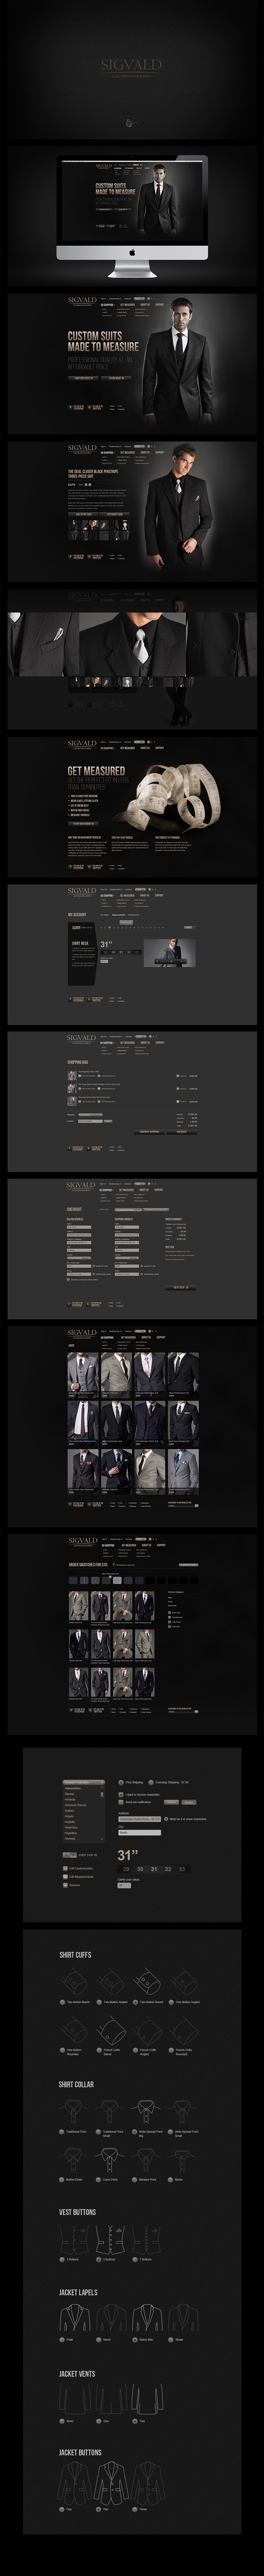 Made to Measure Suits by Alexey Masalov, via #Behance #Webdesign